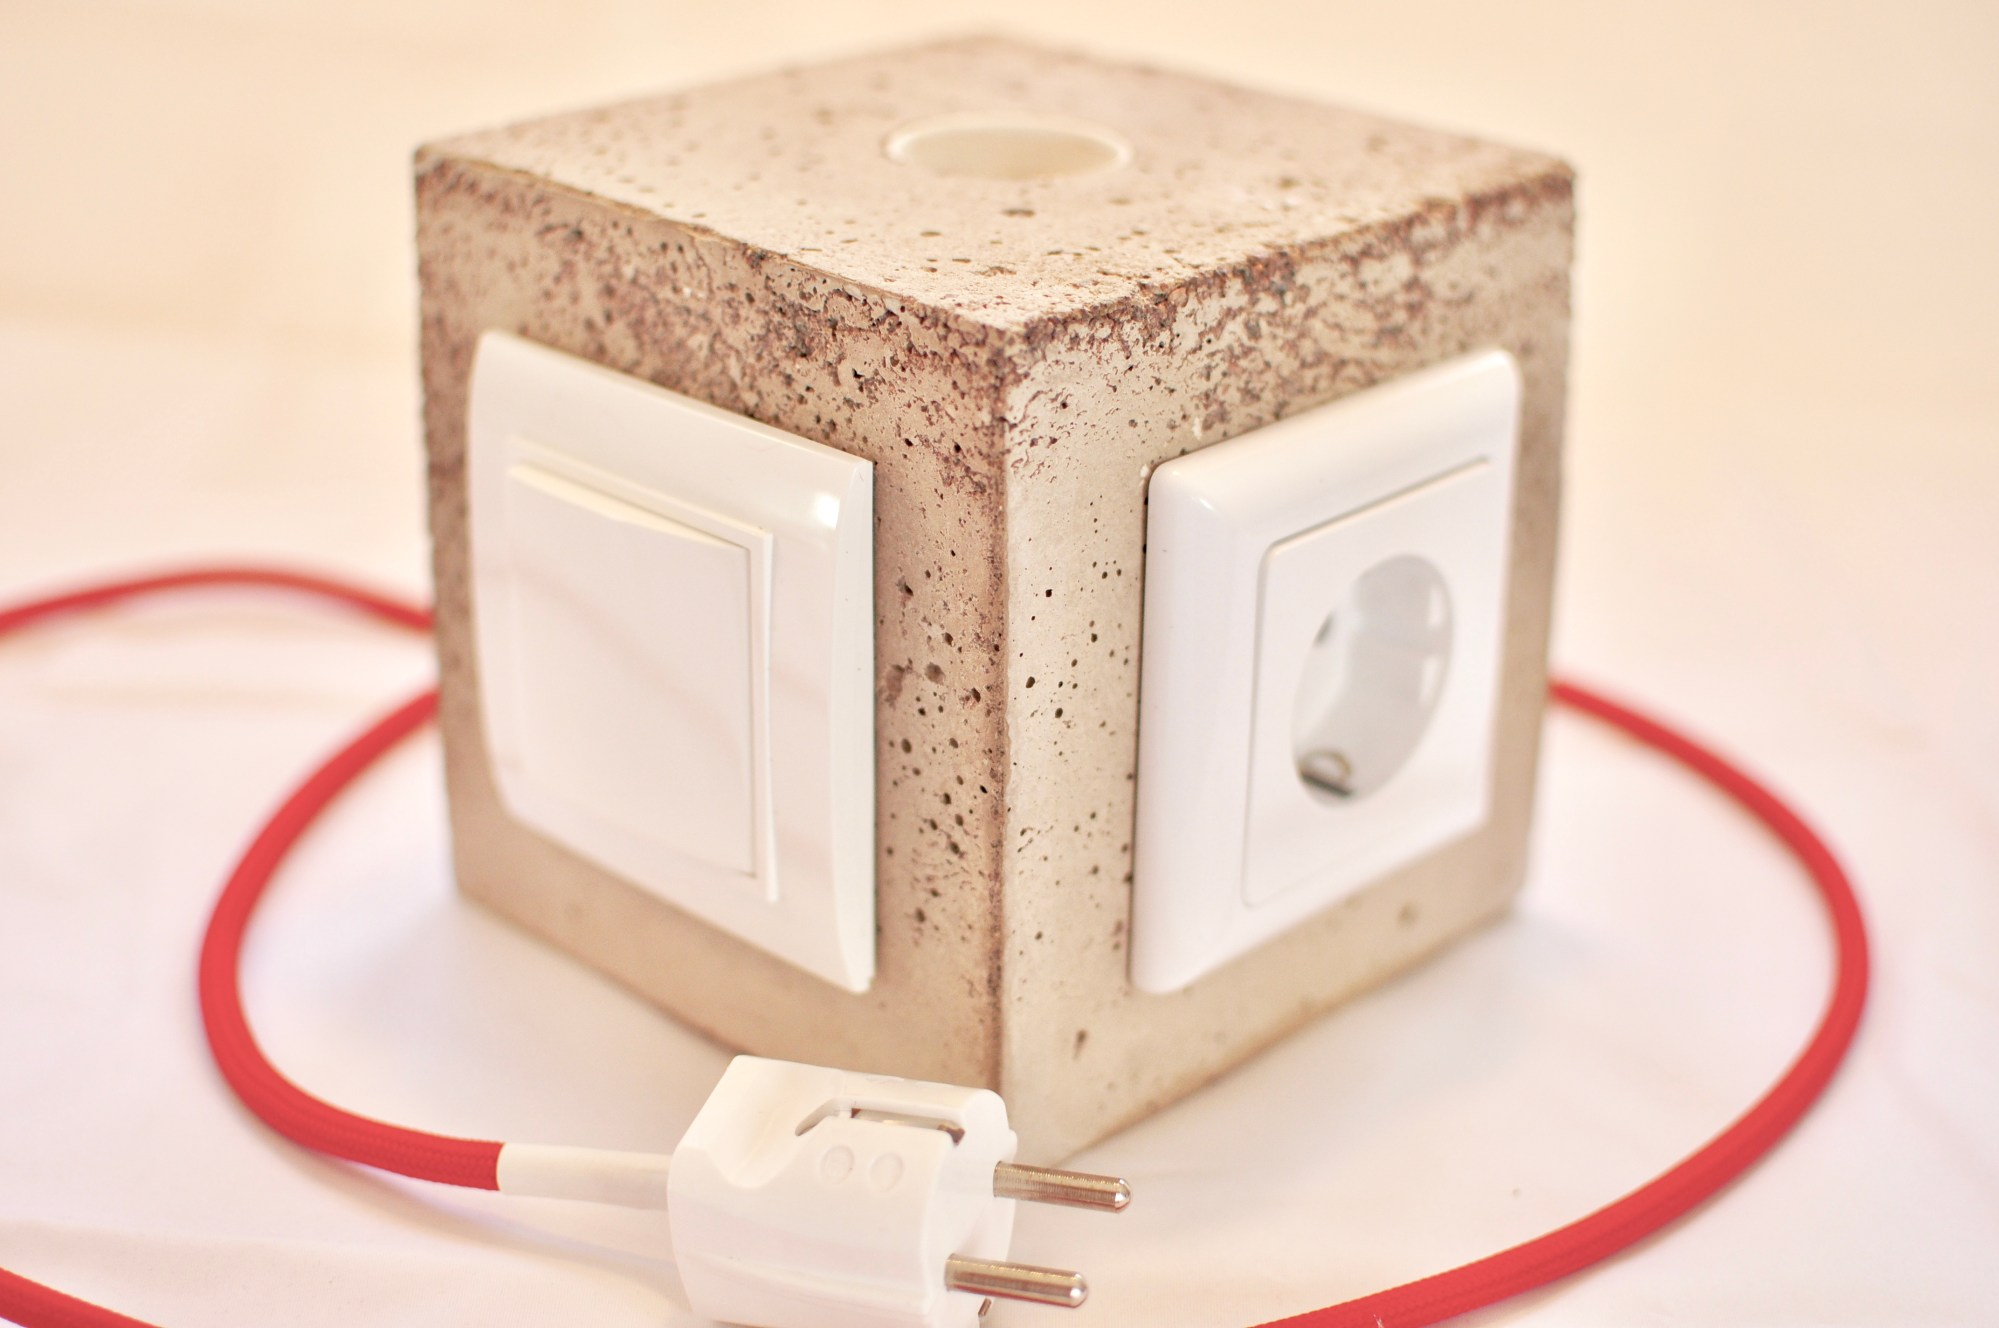 hight resolution of diy concrete lamp with switch and power outlet